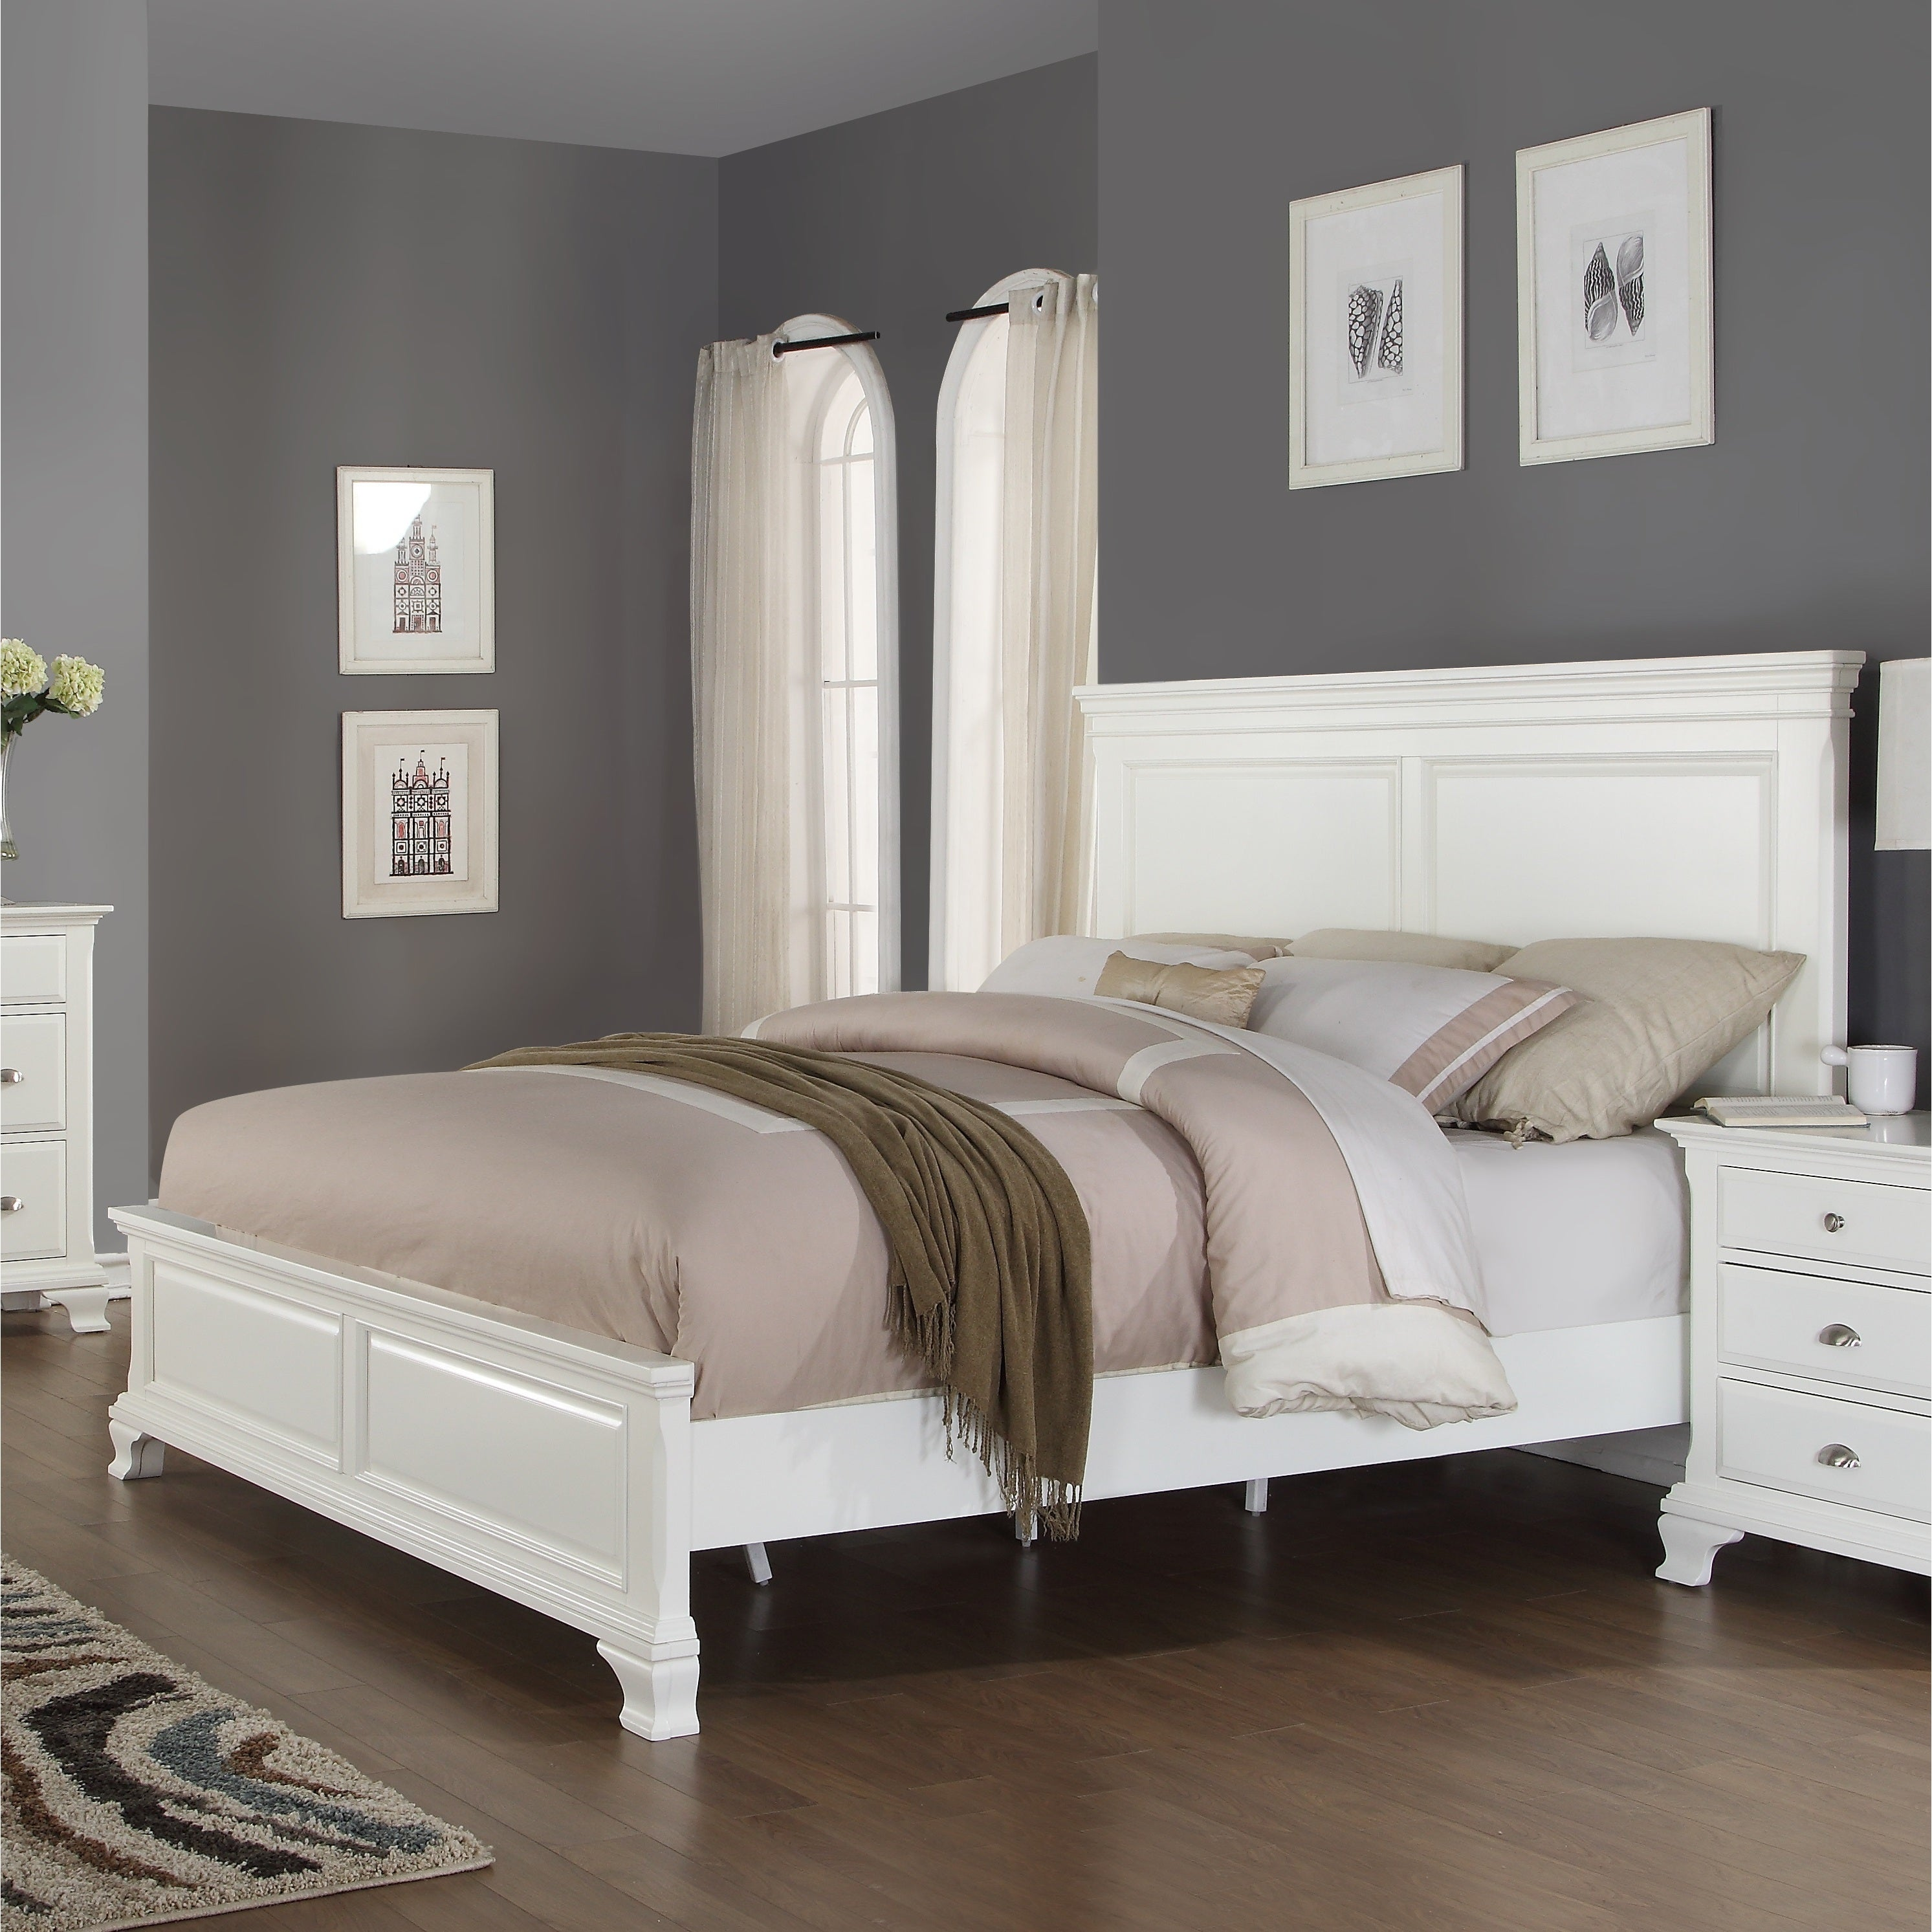 Laveno 012 White Wood Bedroom Furniture Set Includes Queen Bed Dresser Mirror 2 Night Stands And Chest Free Shipping Today